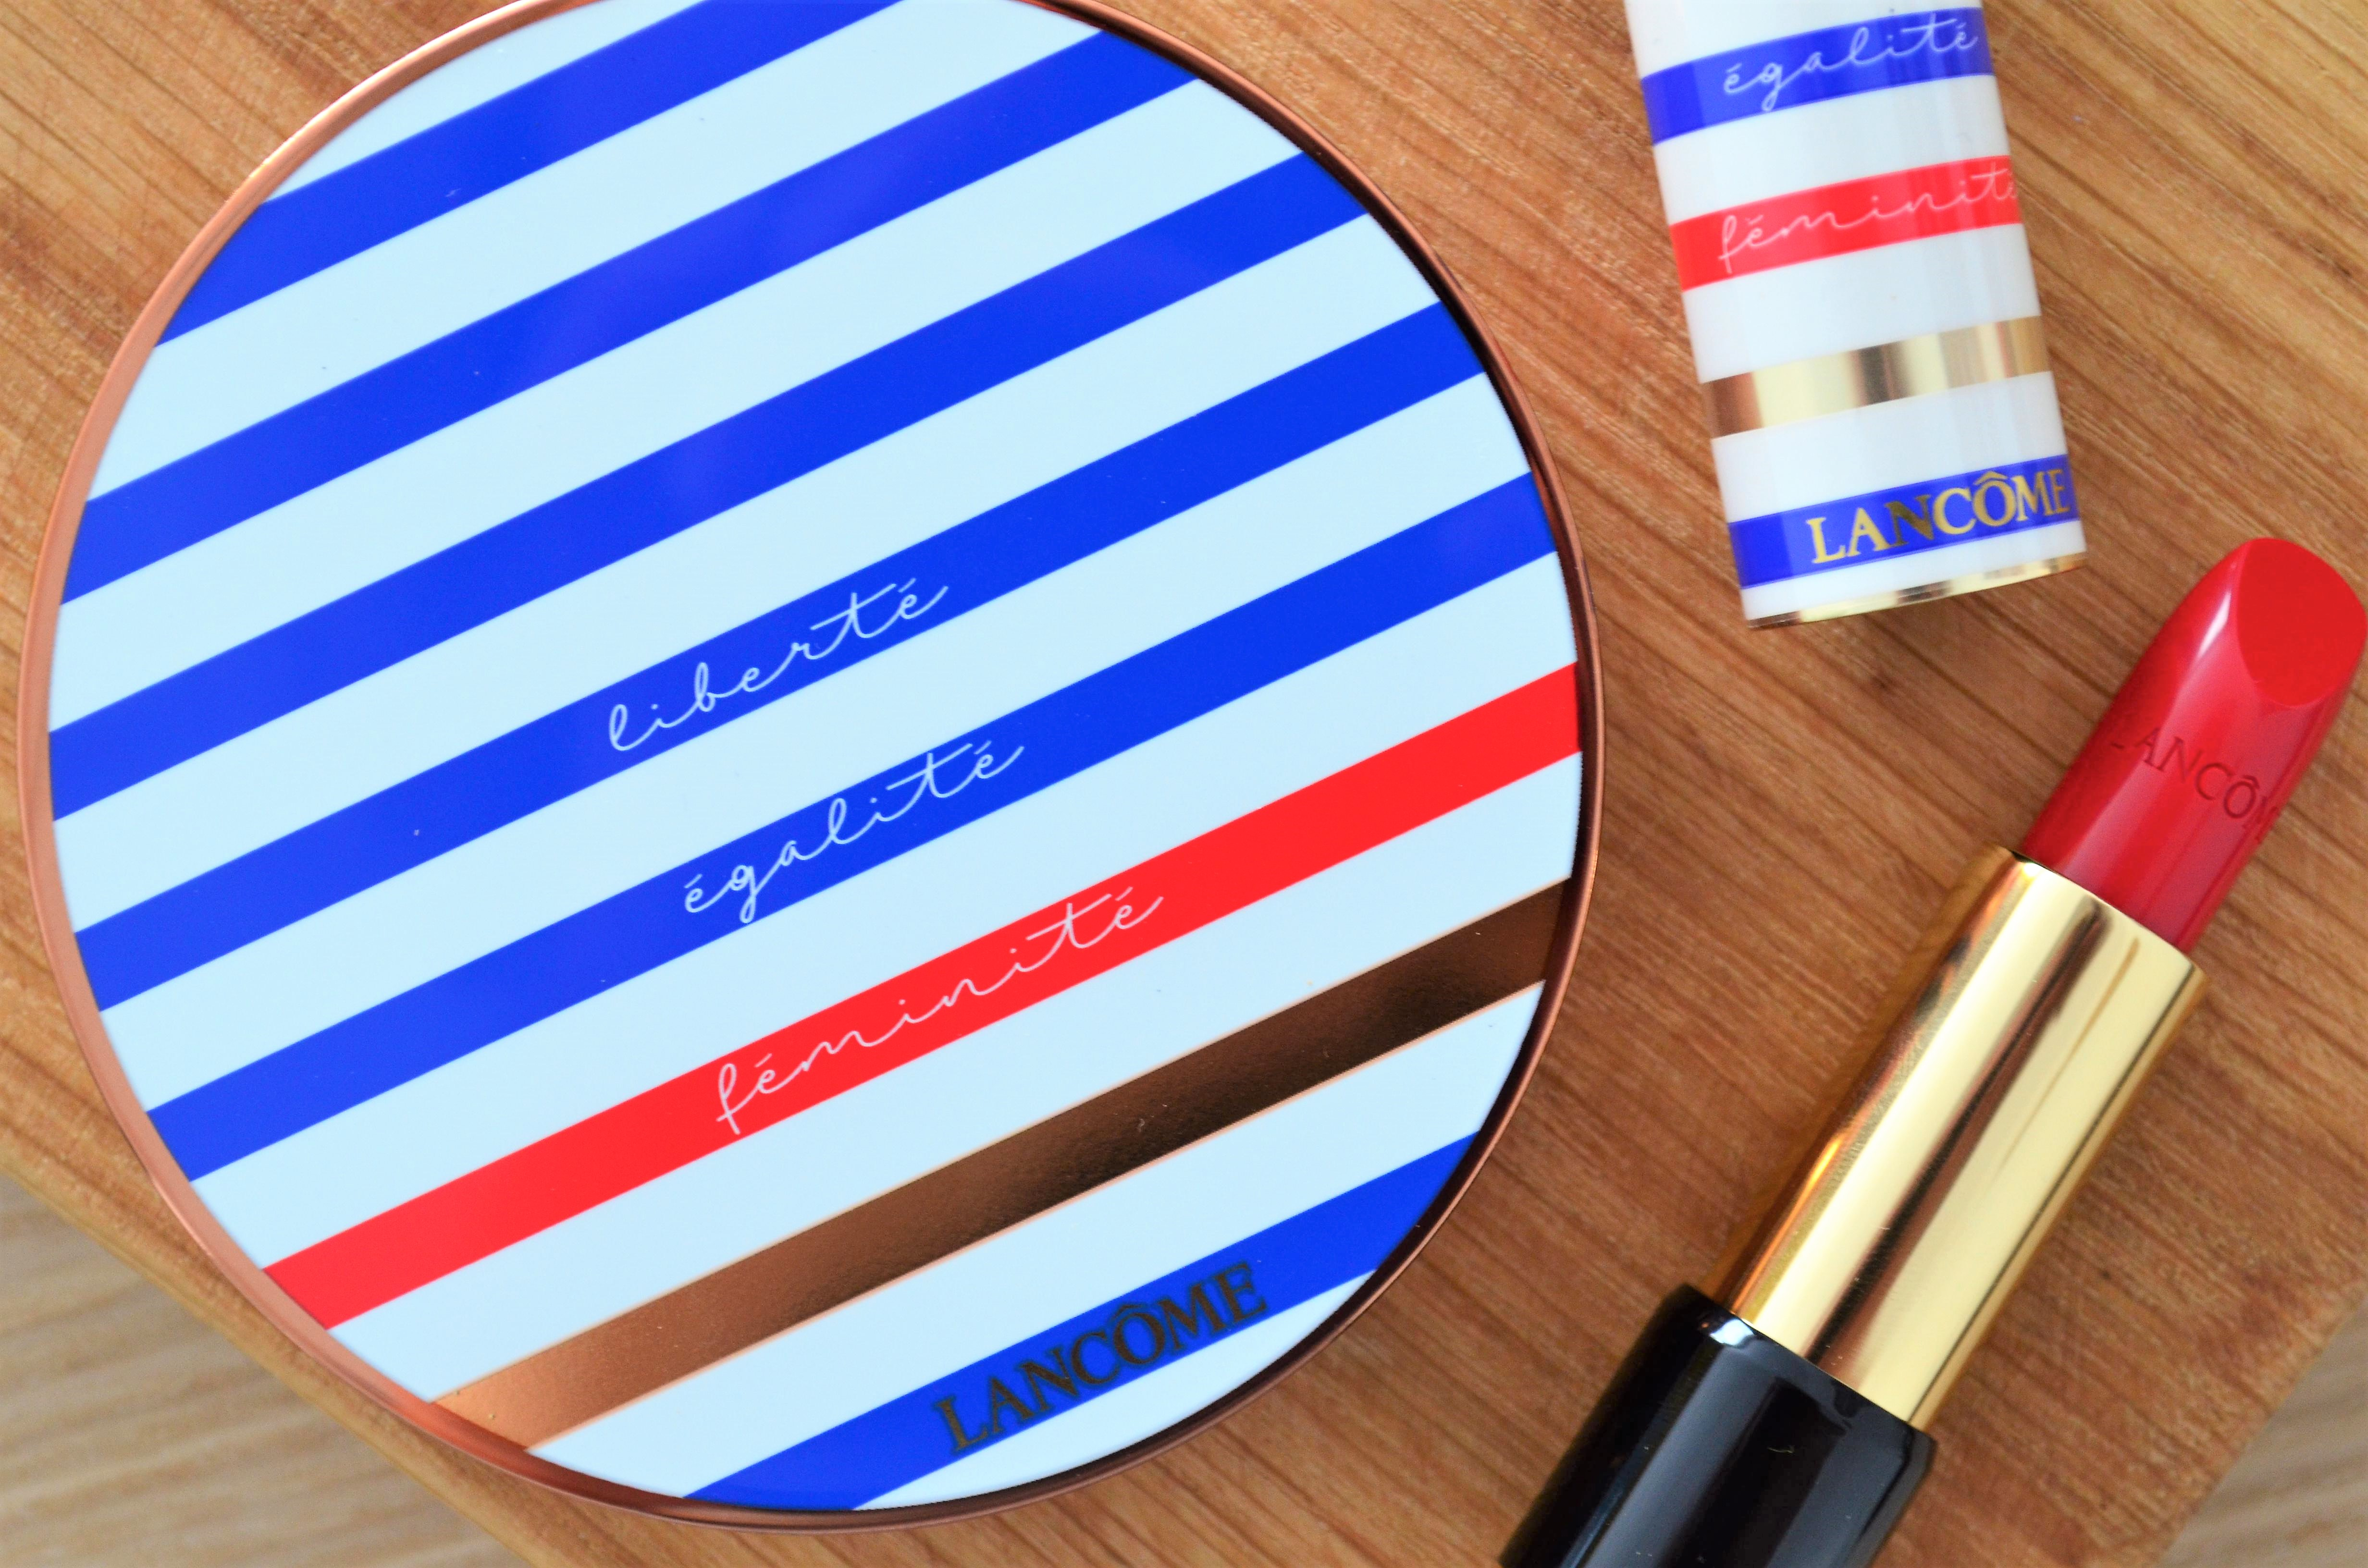 DSC 2263 4928x3264 - Lancome Summer Look 2019 - Bronzer & Lipstick Review